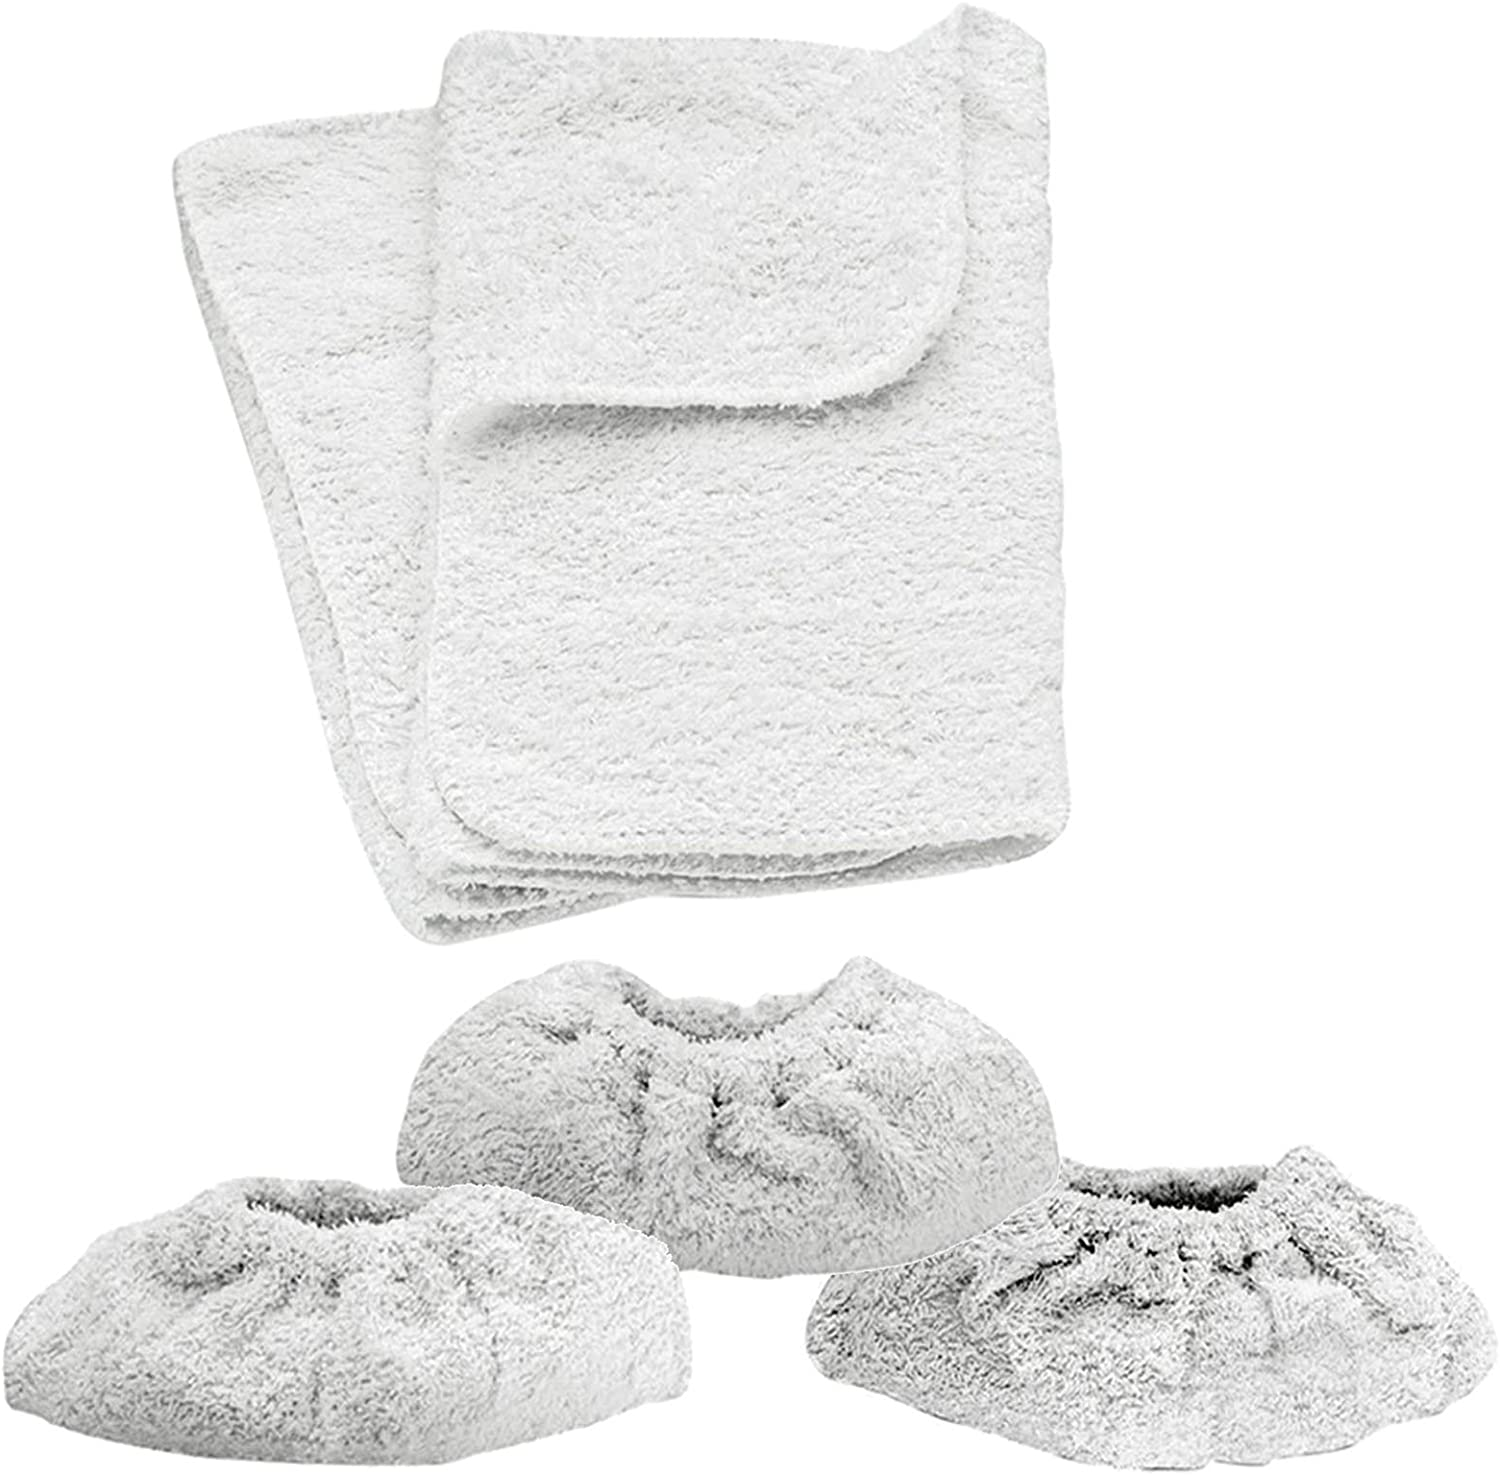 5 x KARCHER SC1002 Steam Cleaner Terry Cloth Cover Pads Hand Tool Cleaning Pad